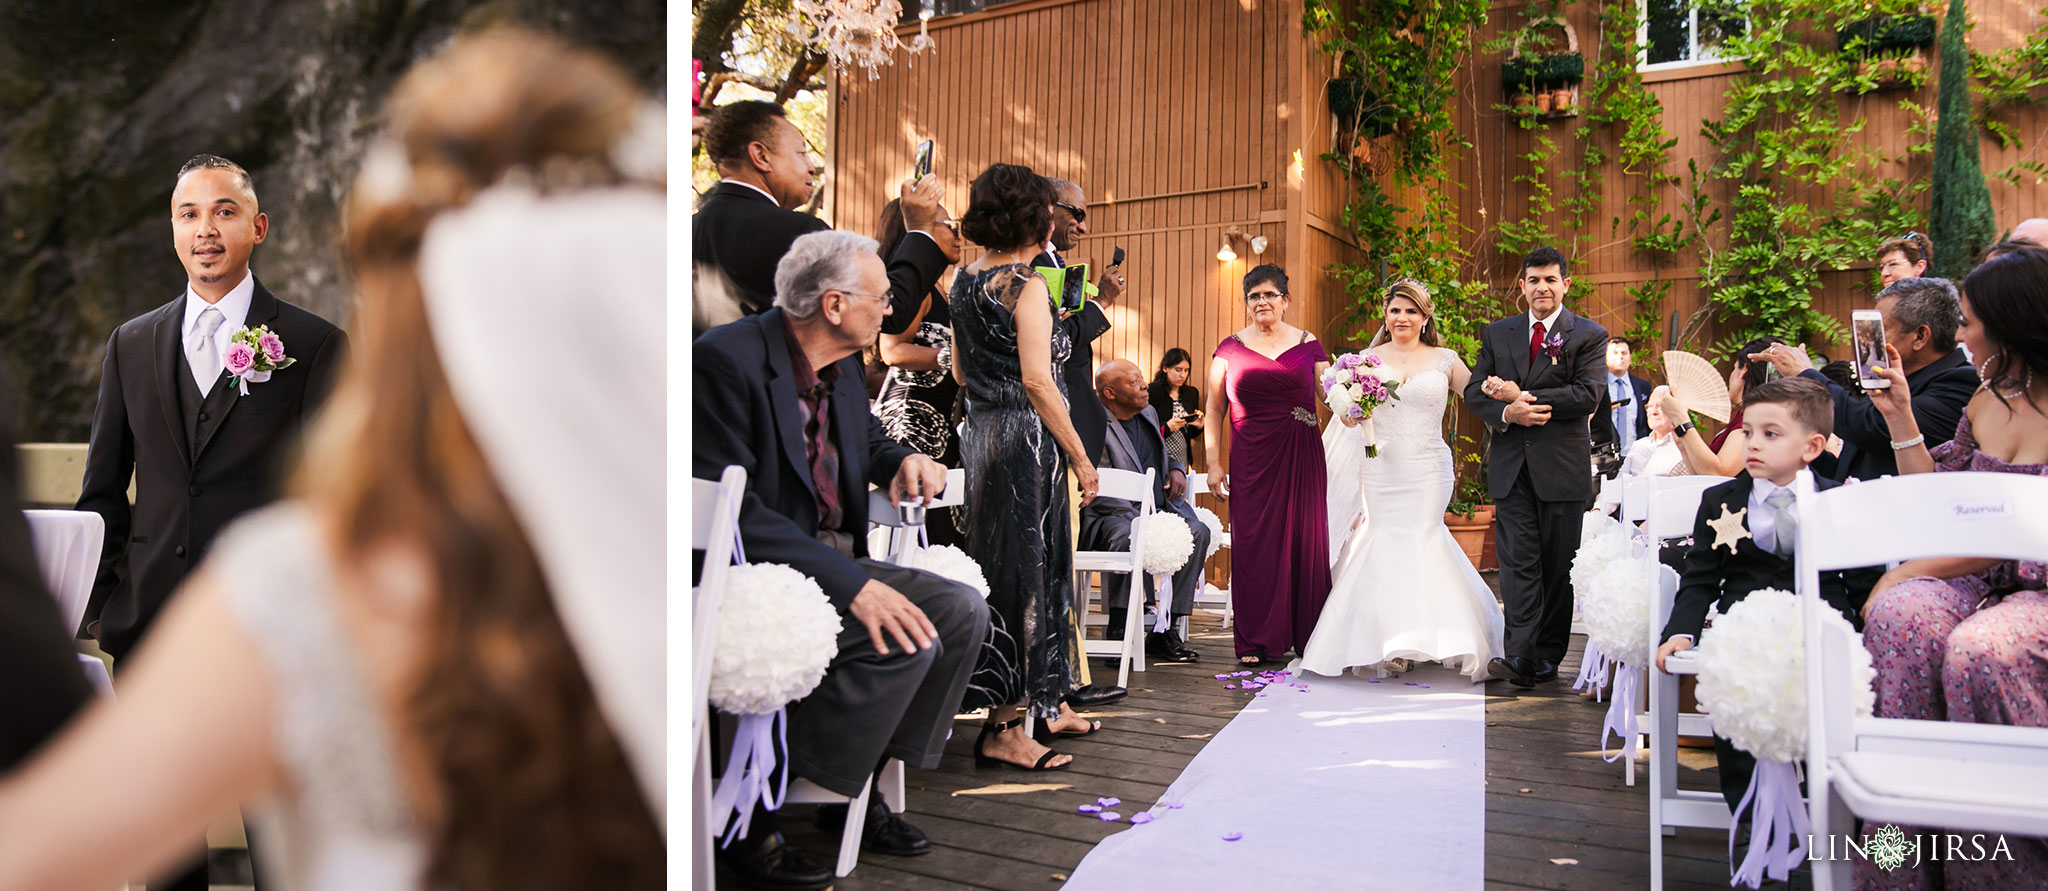 13 calamigos ranch malibu wedding photography